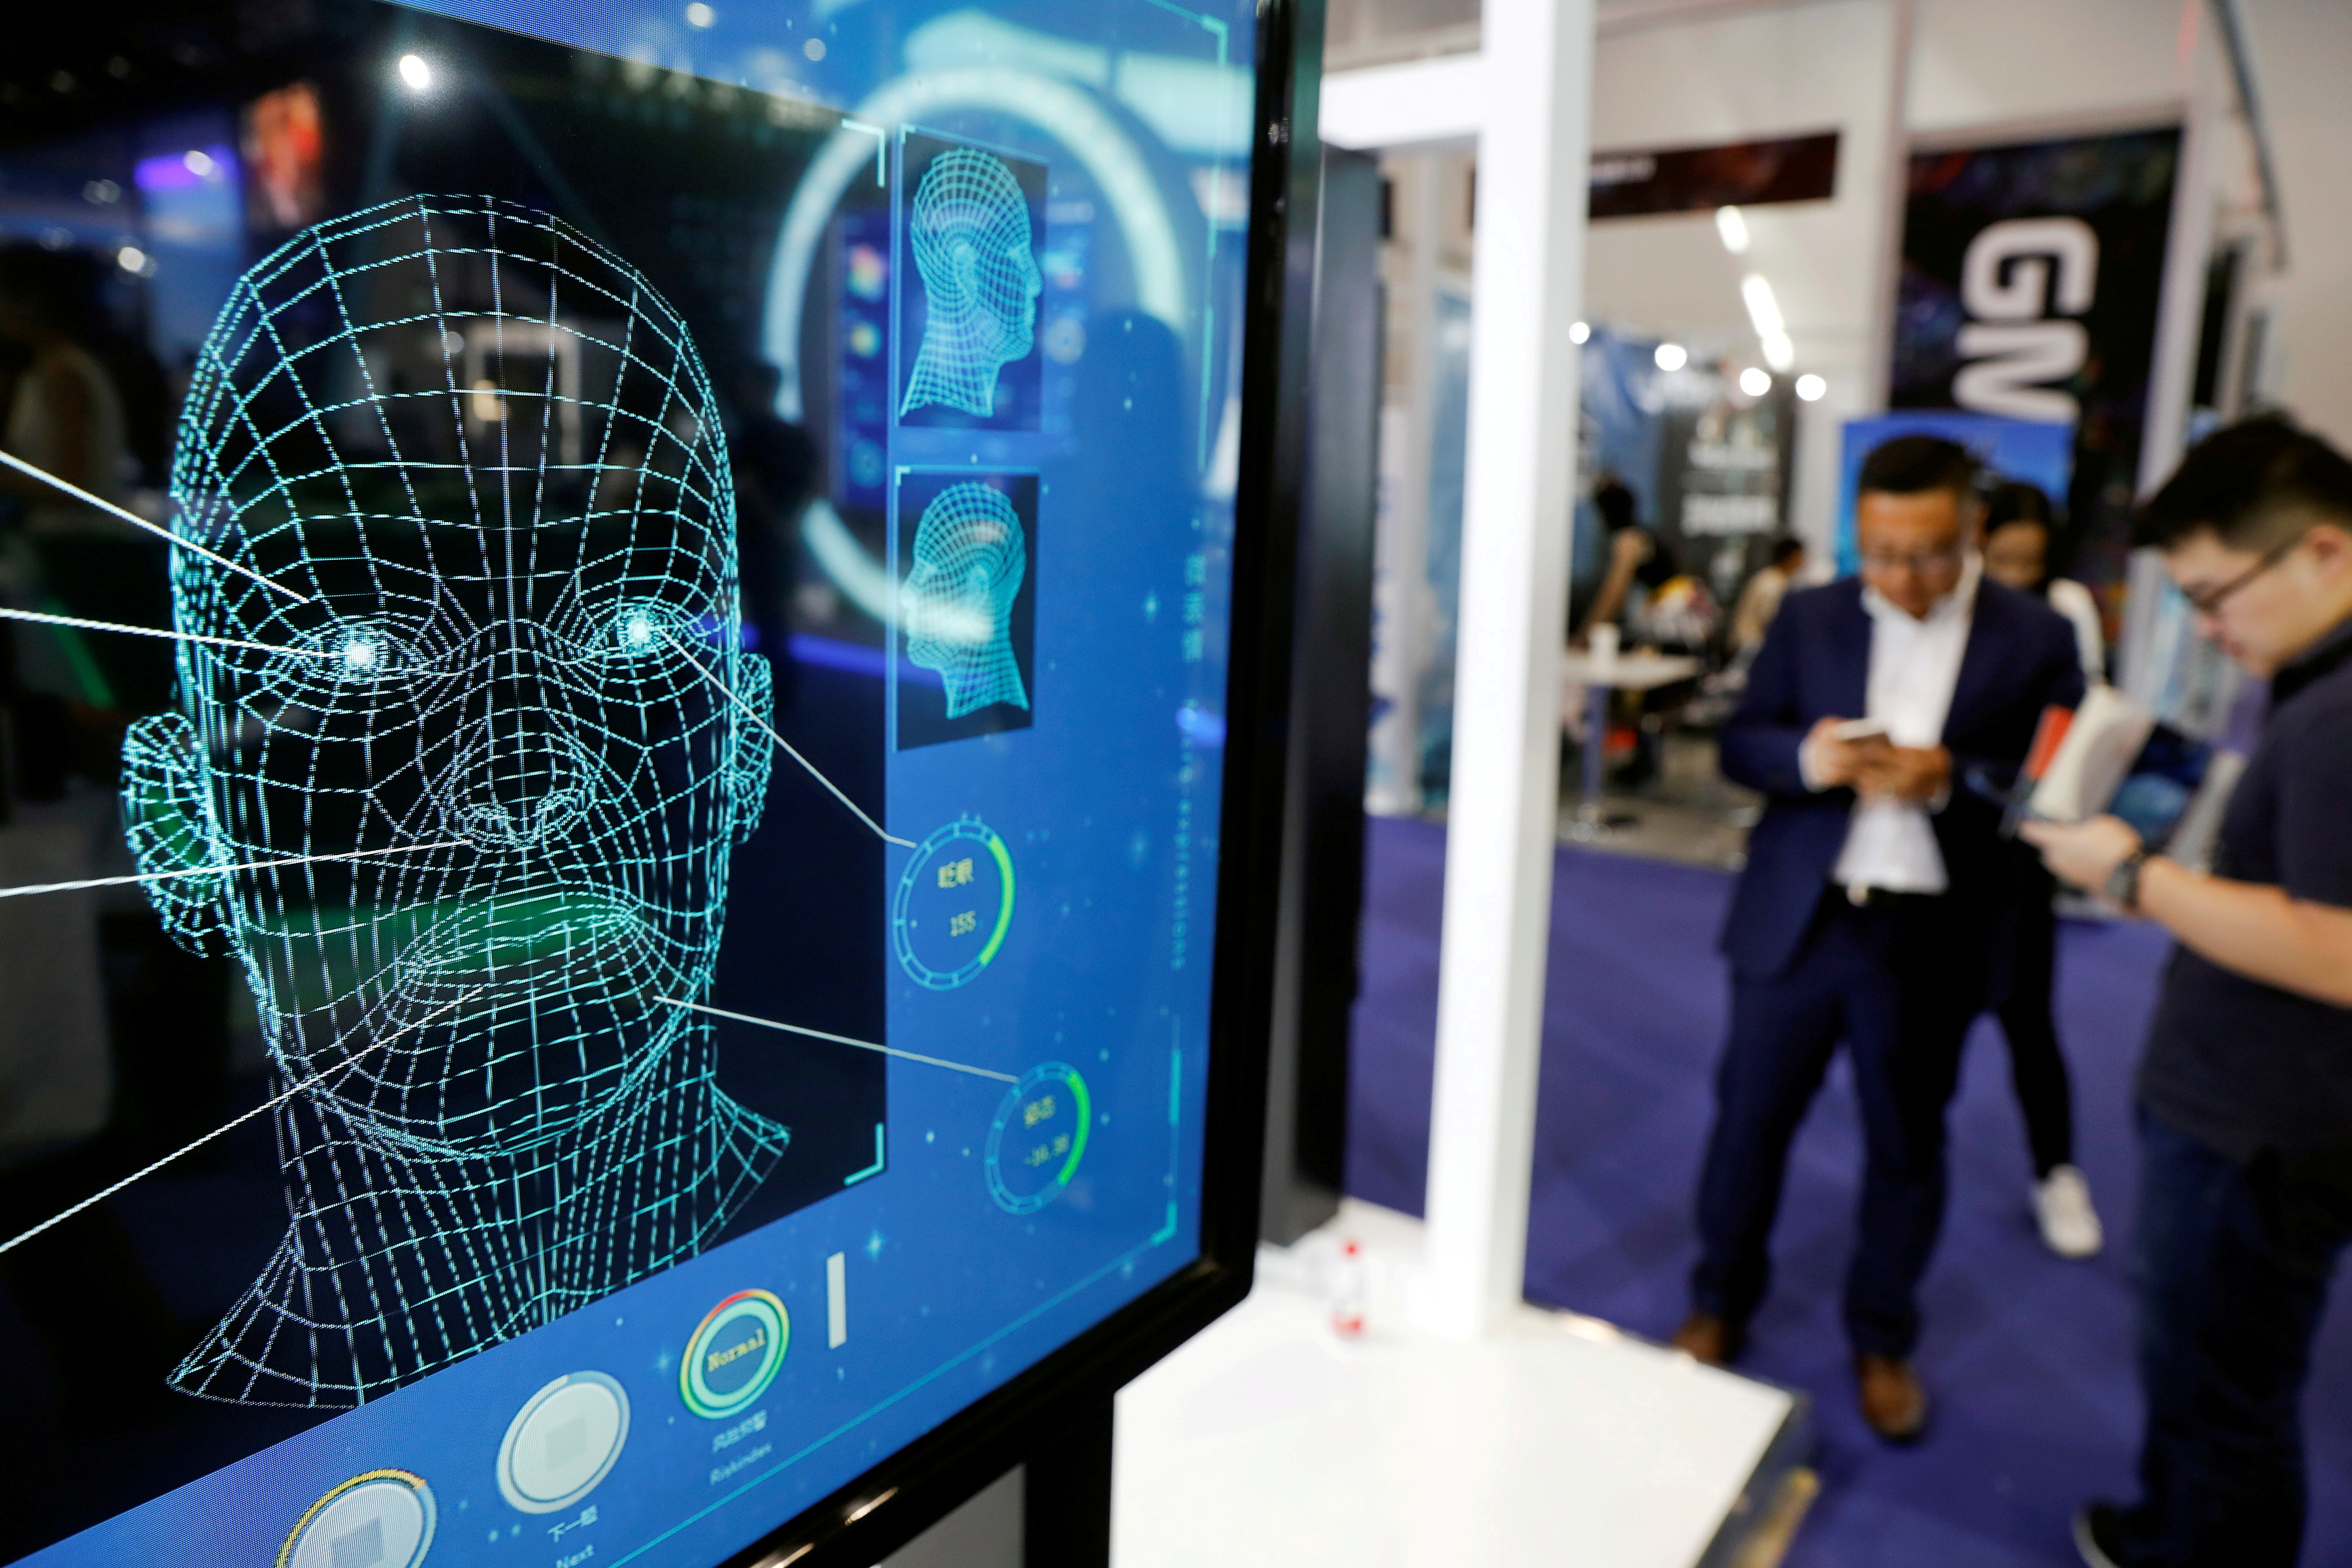 Visitors check their phones behind the screens advertising facial recognition software during Global Mobile Internet Conference at the National Convention in Beijing, China April 27, 2018. REUTERS/Damir Sagolj